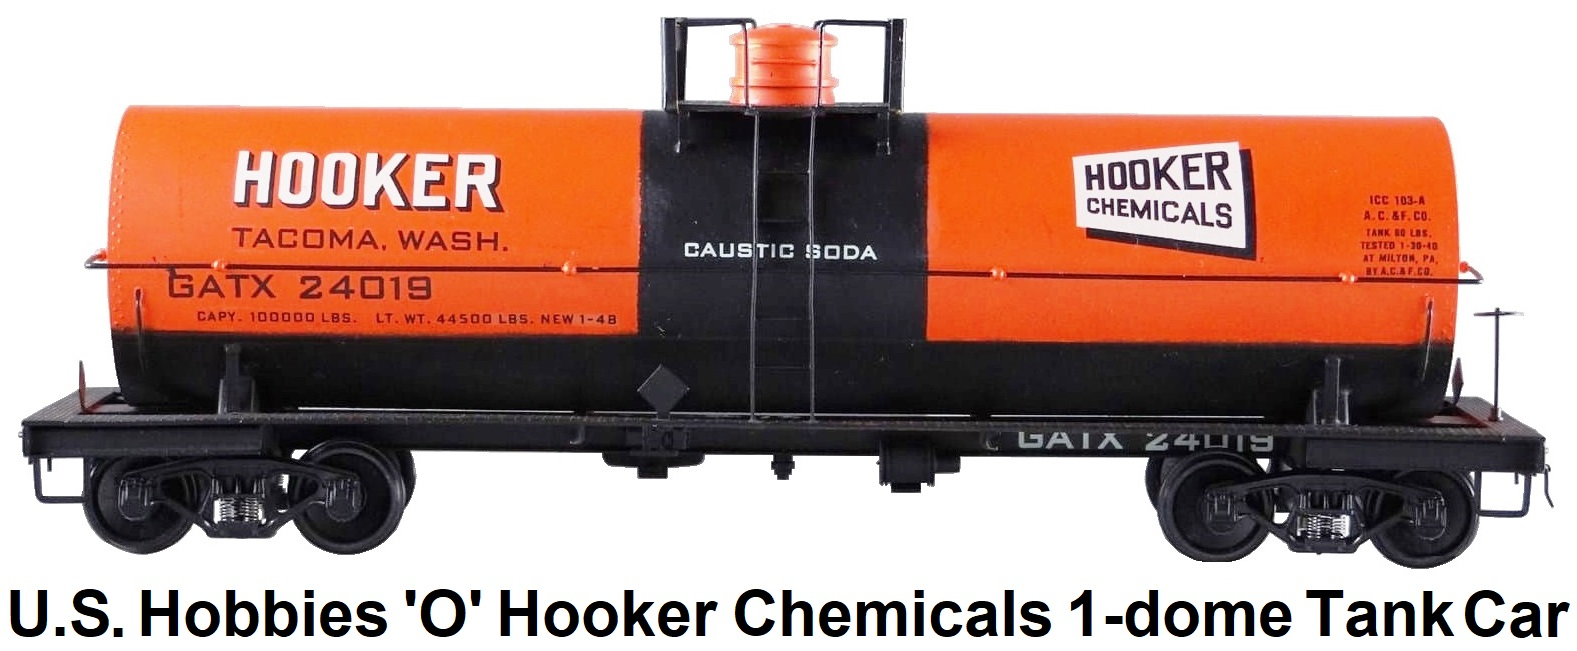 U.S. Hobbies Inc. 'O' scale Brass Import KTM #305 Hooker Chemicals 10,000 gallon 1 dome chemical tank car for 2-Rail